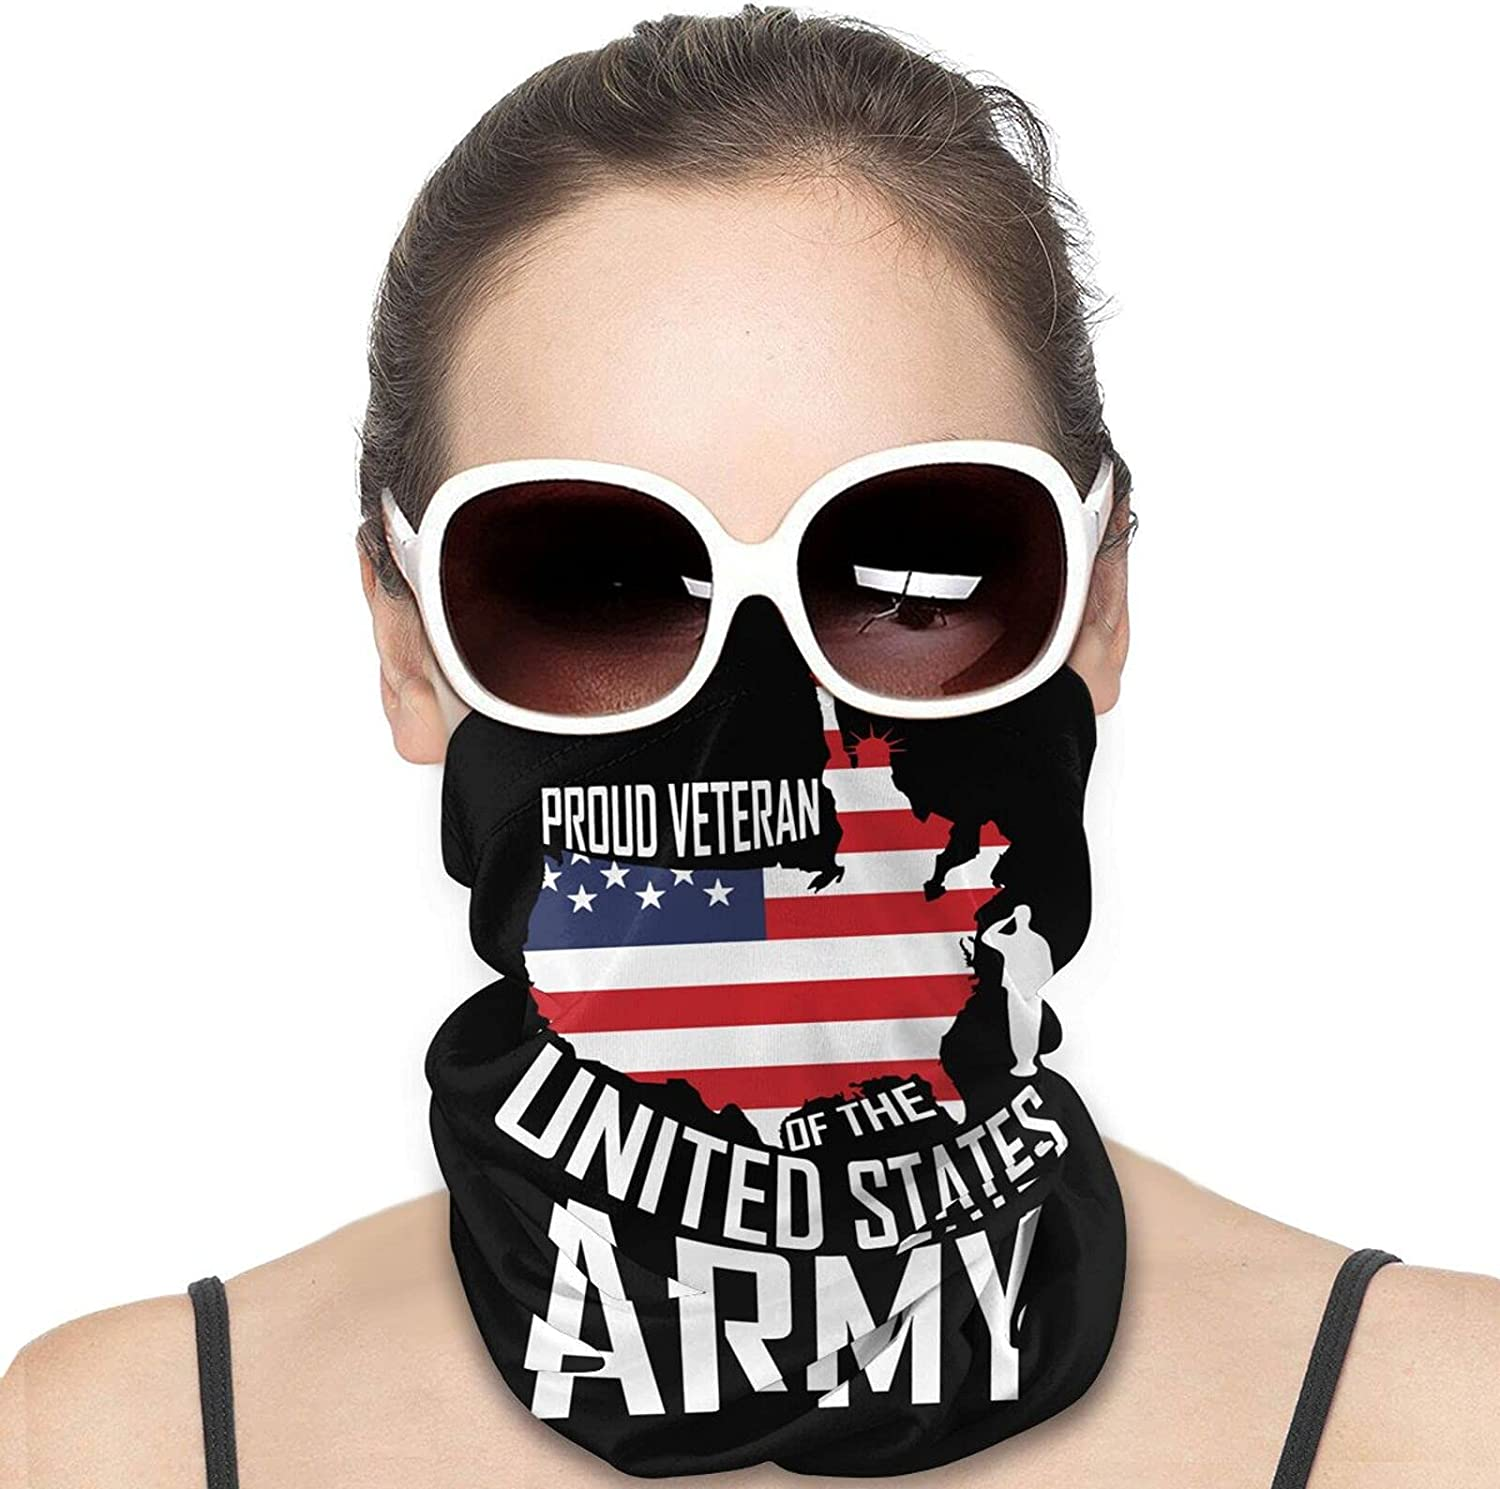 PROUD VETERAN OF THE UNITED STATES ARMY Round Neck Gaiter Bandnas Face Cover Uv Protection Prevent bask in Ice Scarf Headbands Perfect for Motorcycle Cycling Running Festival Raves Outdoors